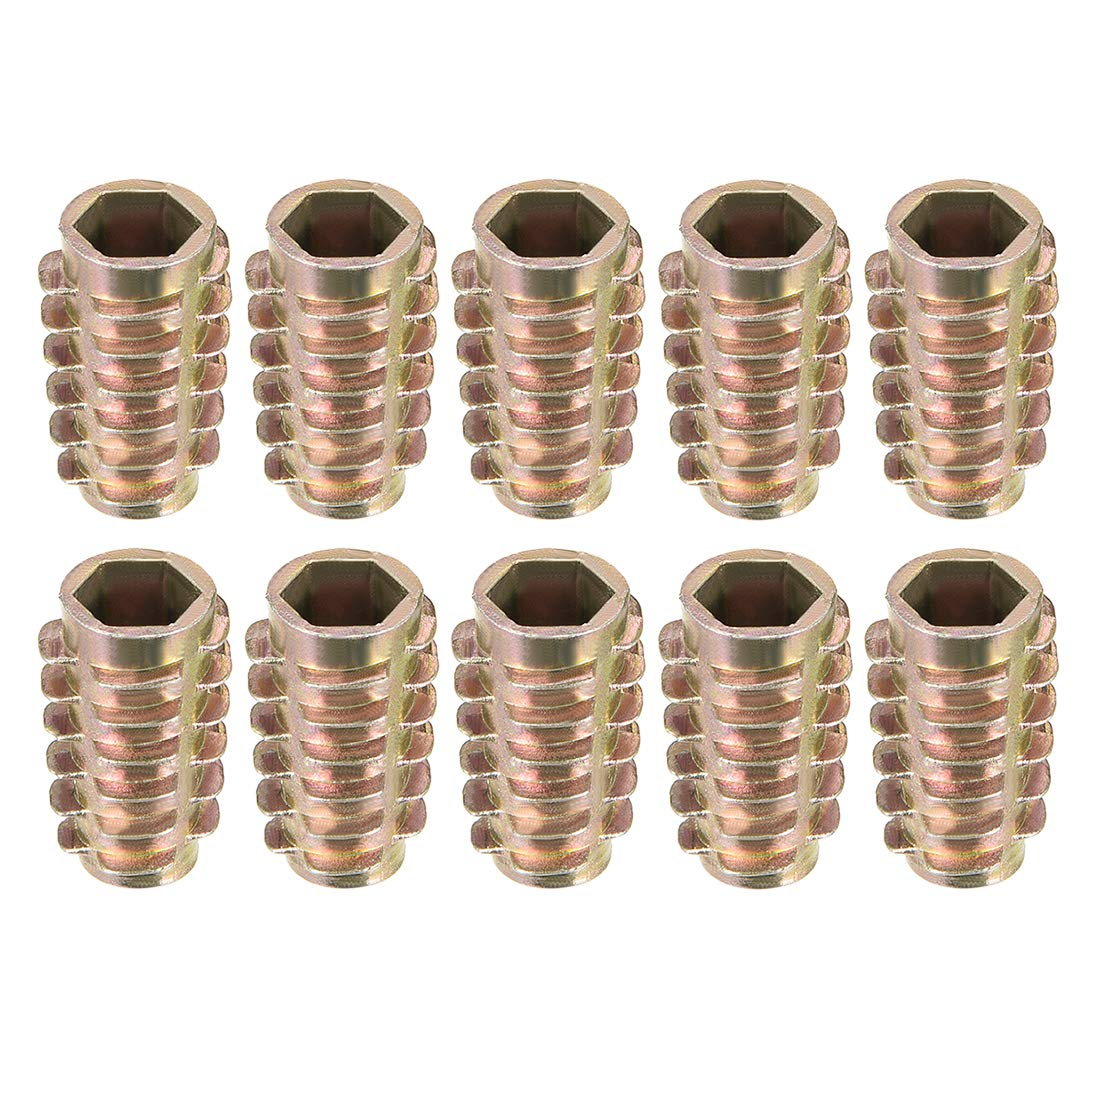 uxcell Threaded Insert Nuts Zinc Alloy Hex-Flush M8 Internal Threads 13mm Length 30pcs